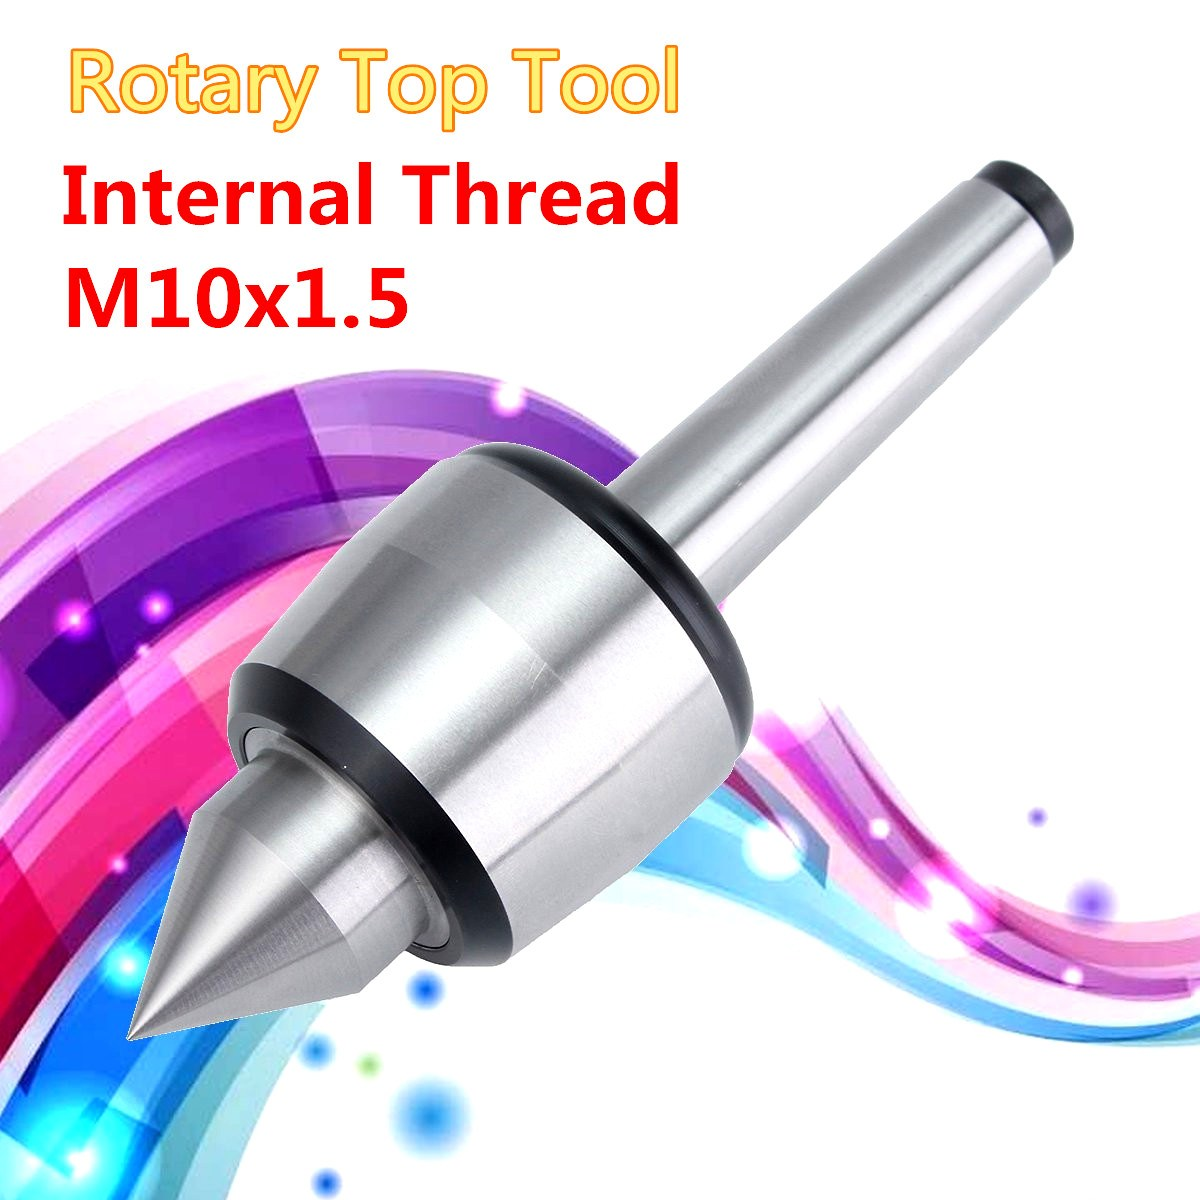 Internal Thread Insert type live center Rotary Top Tool For M10x1.5 MT2 MK2 milling Lathe-us григорий лепс парус live